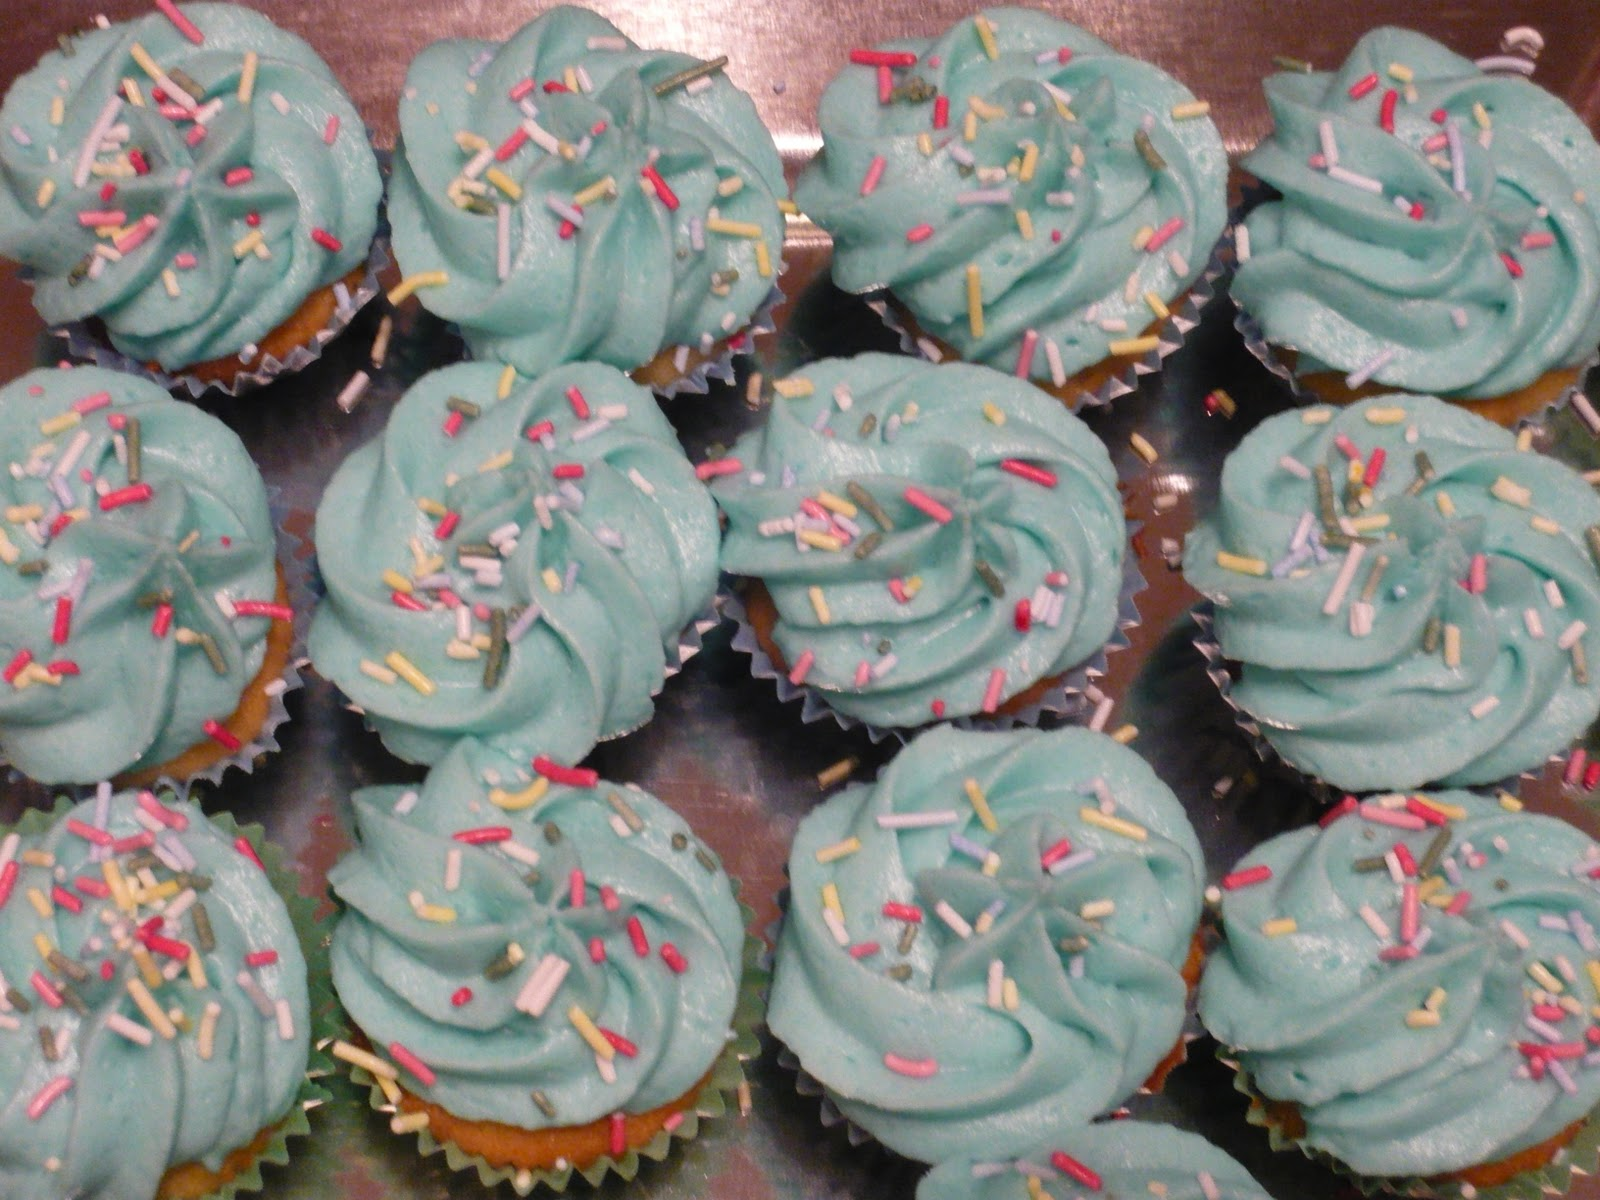 Cake Decorating Classes Dundee : Becca Bakes: Blue is the new pink